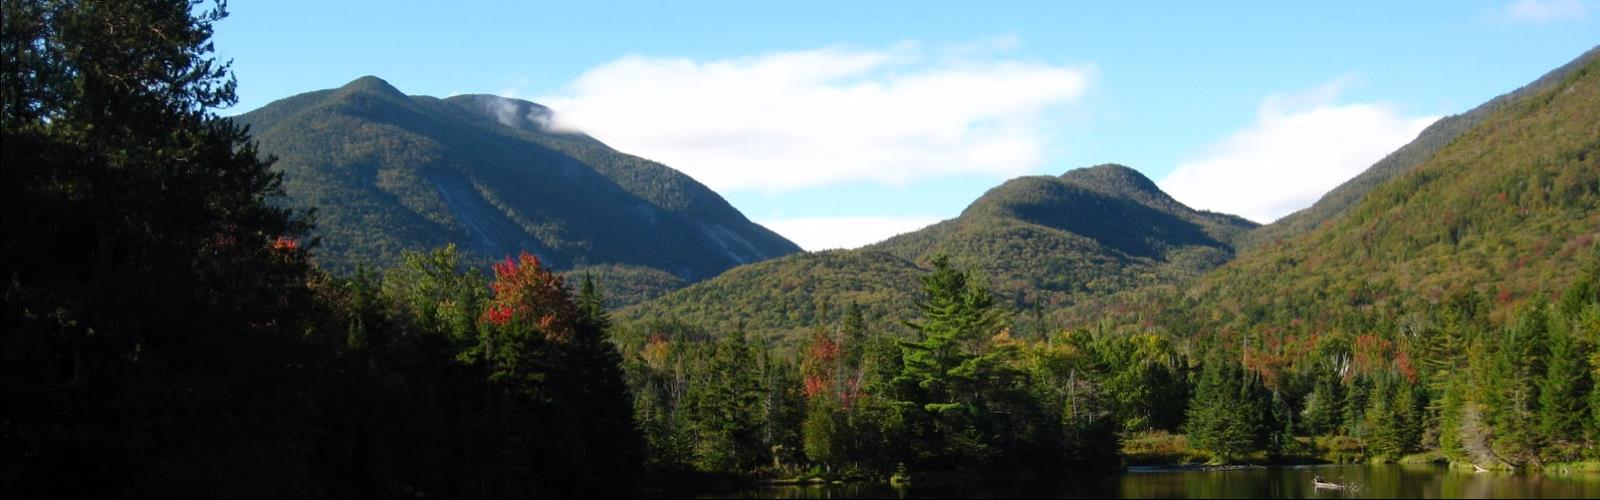 Mount Marcy, New York - Randonnée Pedestre  mountain sky outdoor nature tree cloud landscape green plant hill station forest wilderness lake hillside lush surrounded highland